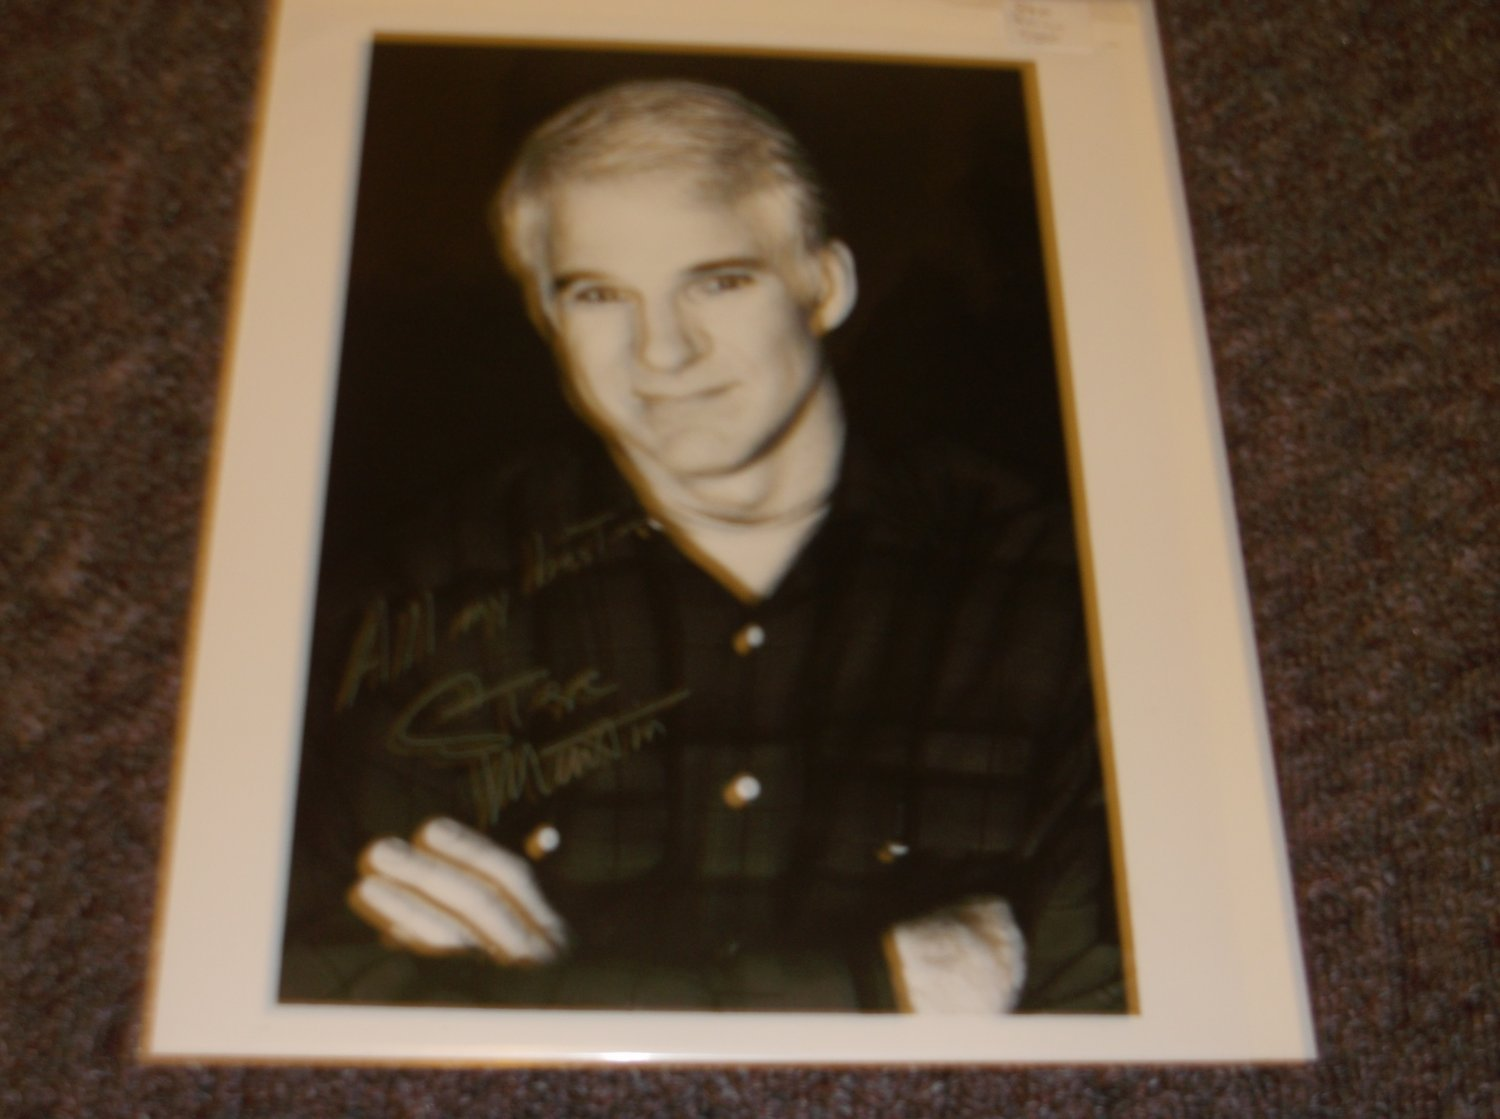 Steve Martin signed 8x10 photo probably a reprint